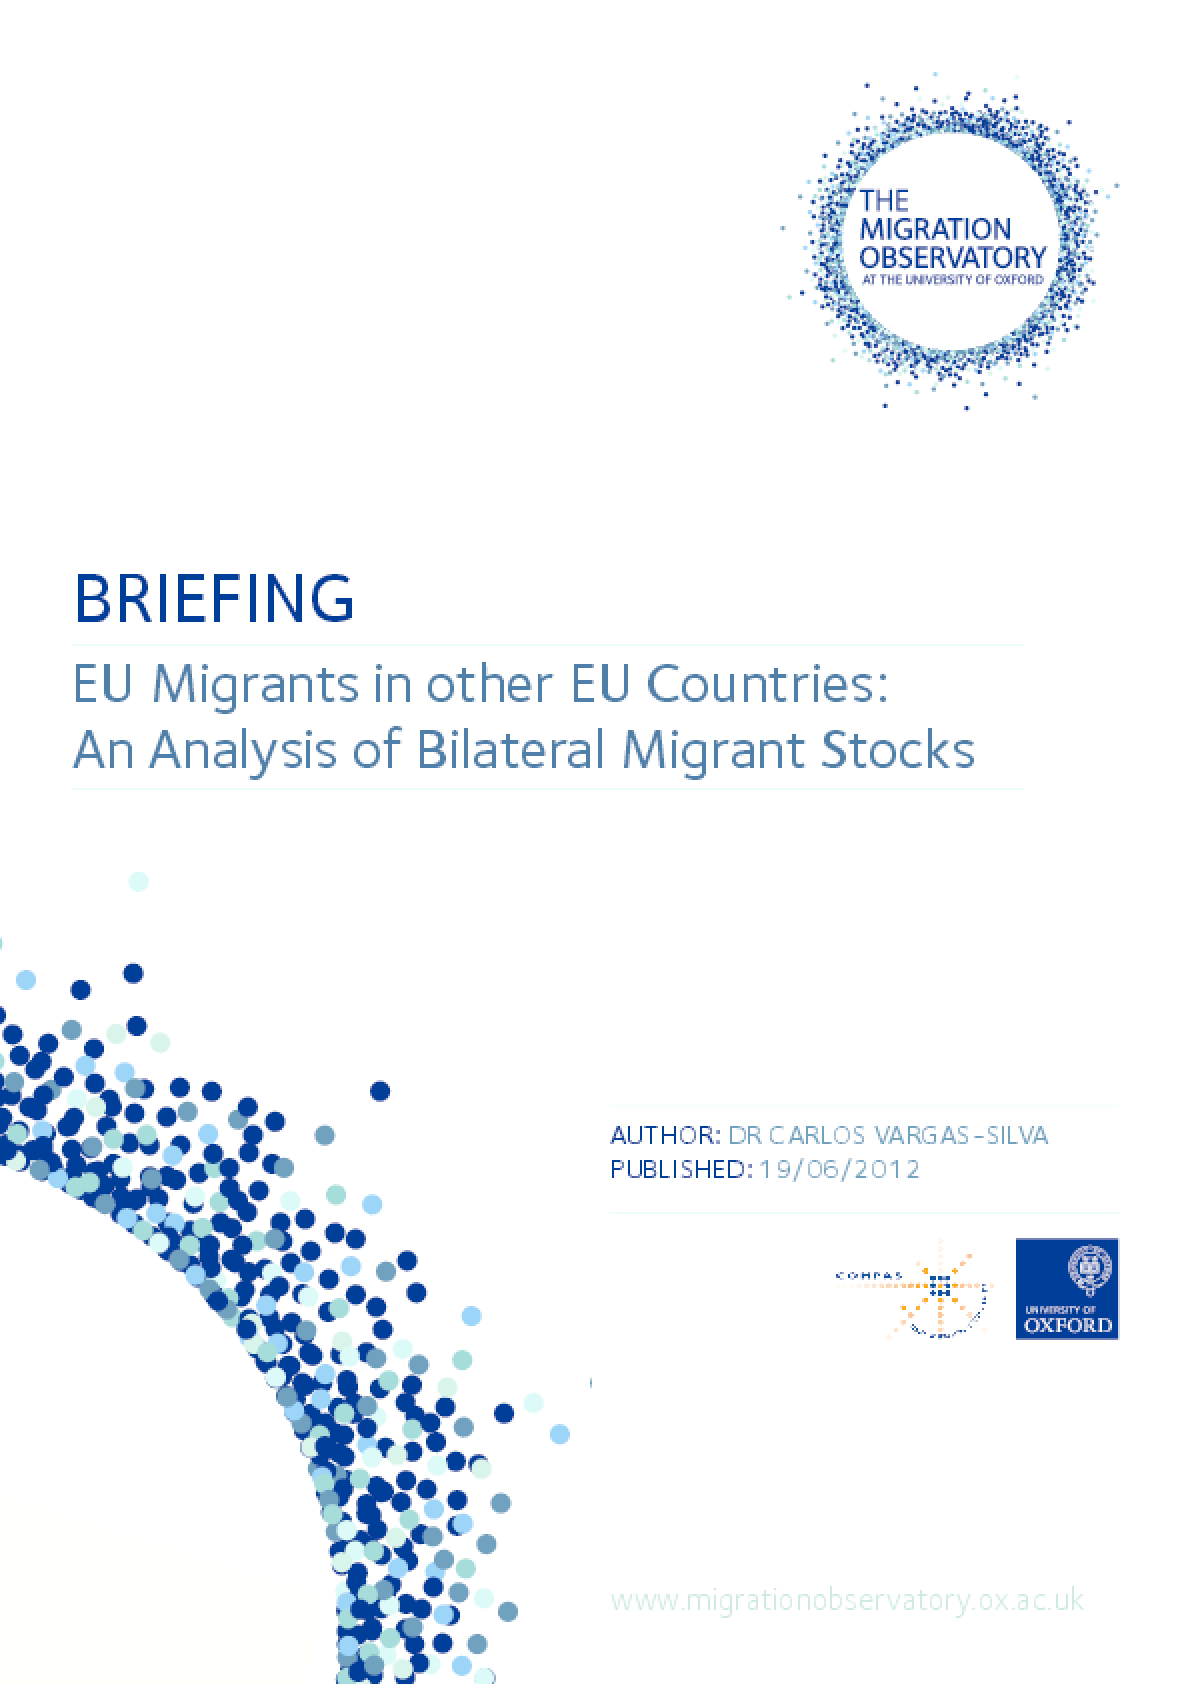 EU Migrants in Other EU Countries: An Analysis of Bilateral Migrant Stocks